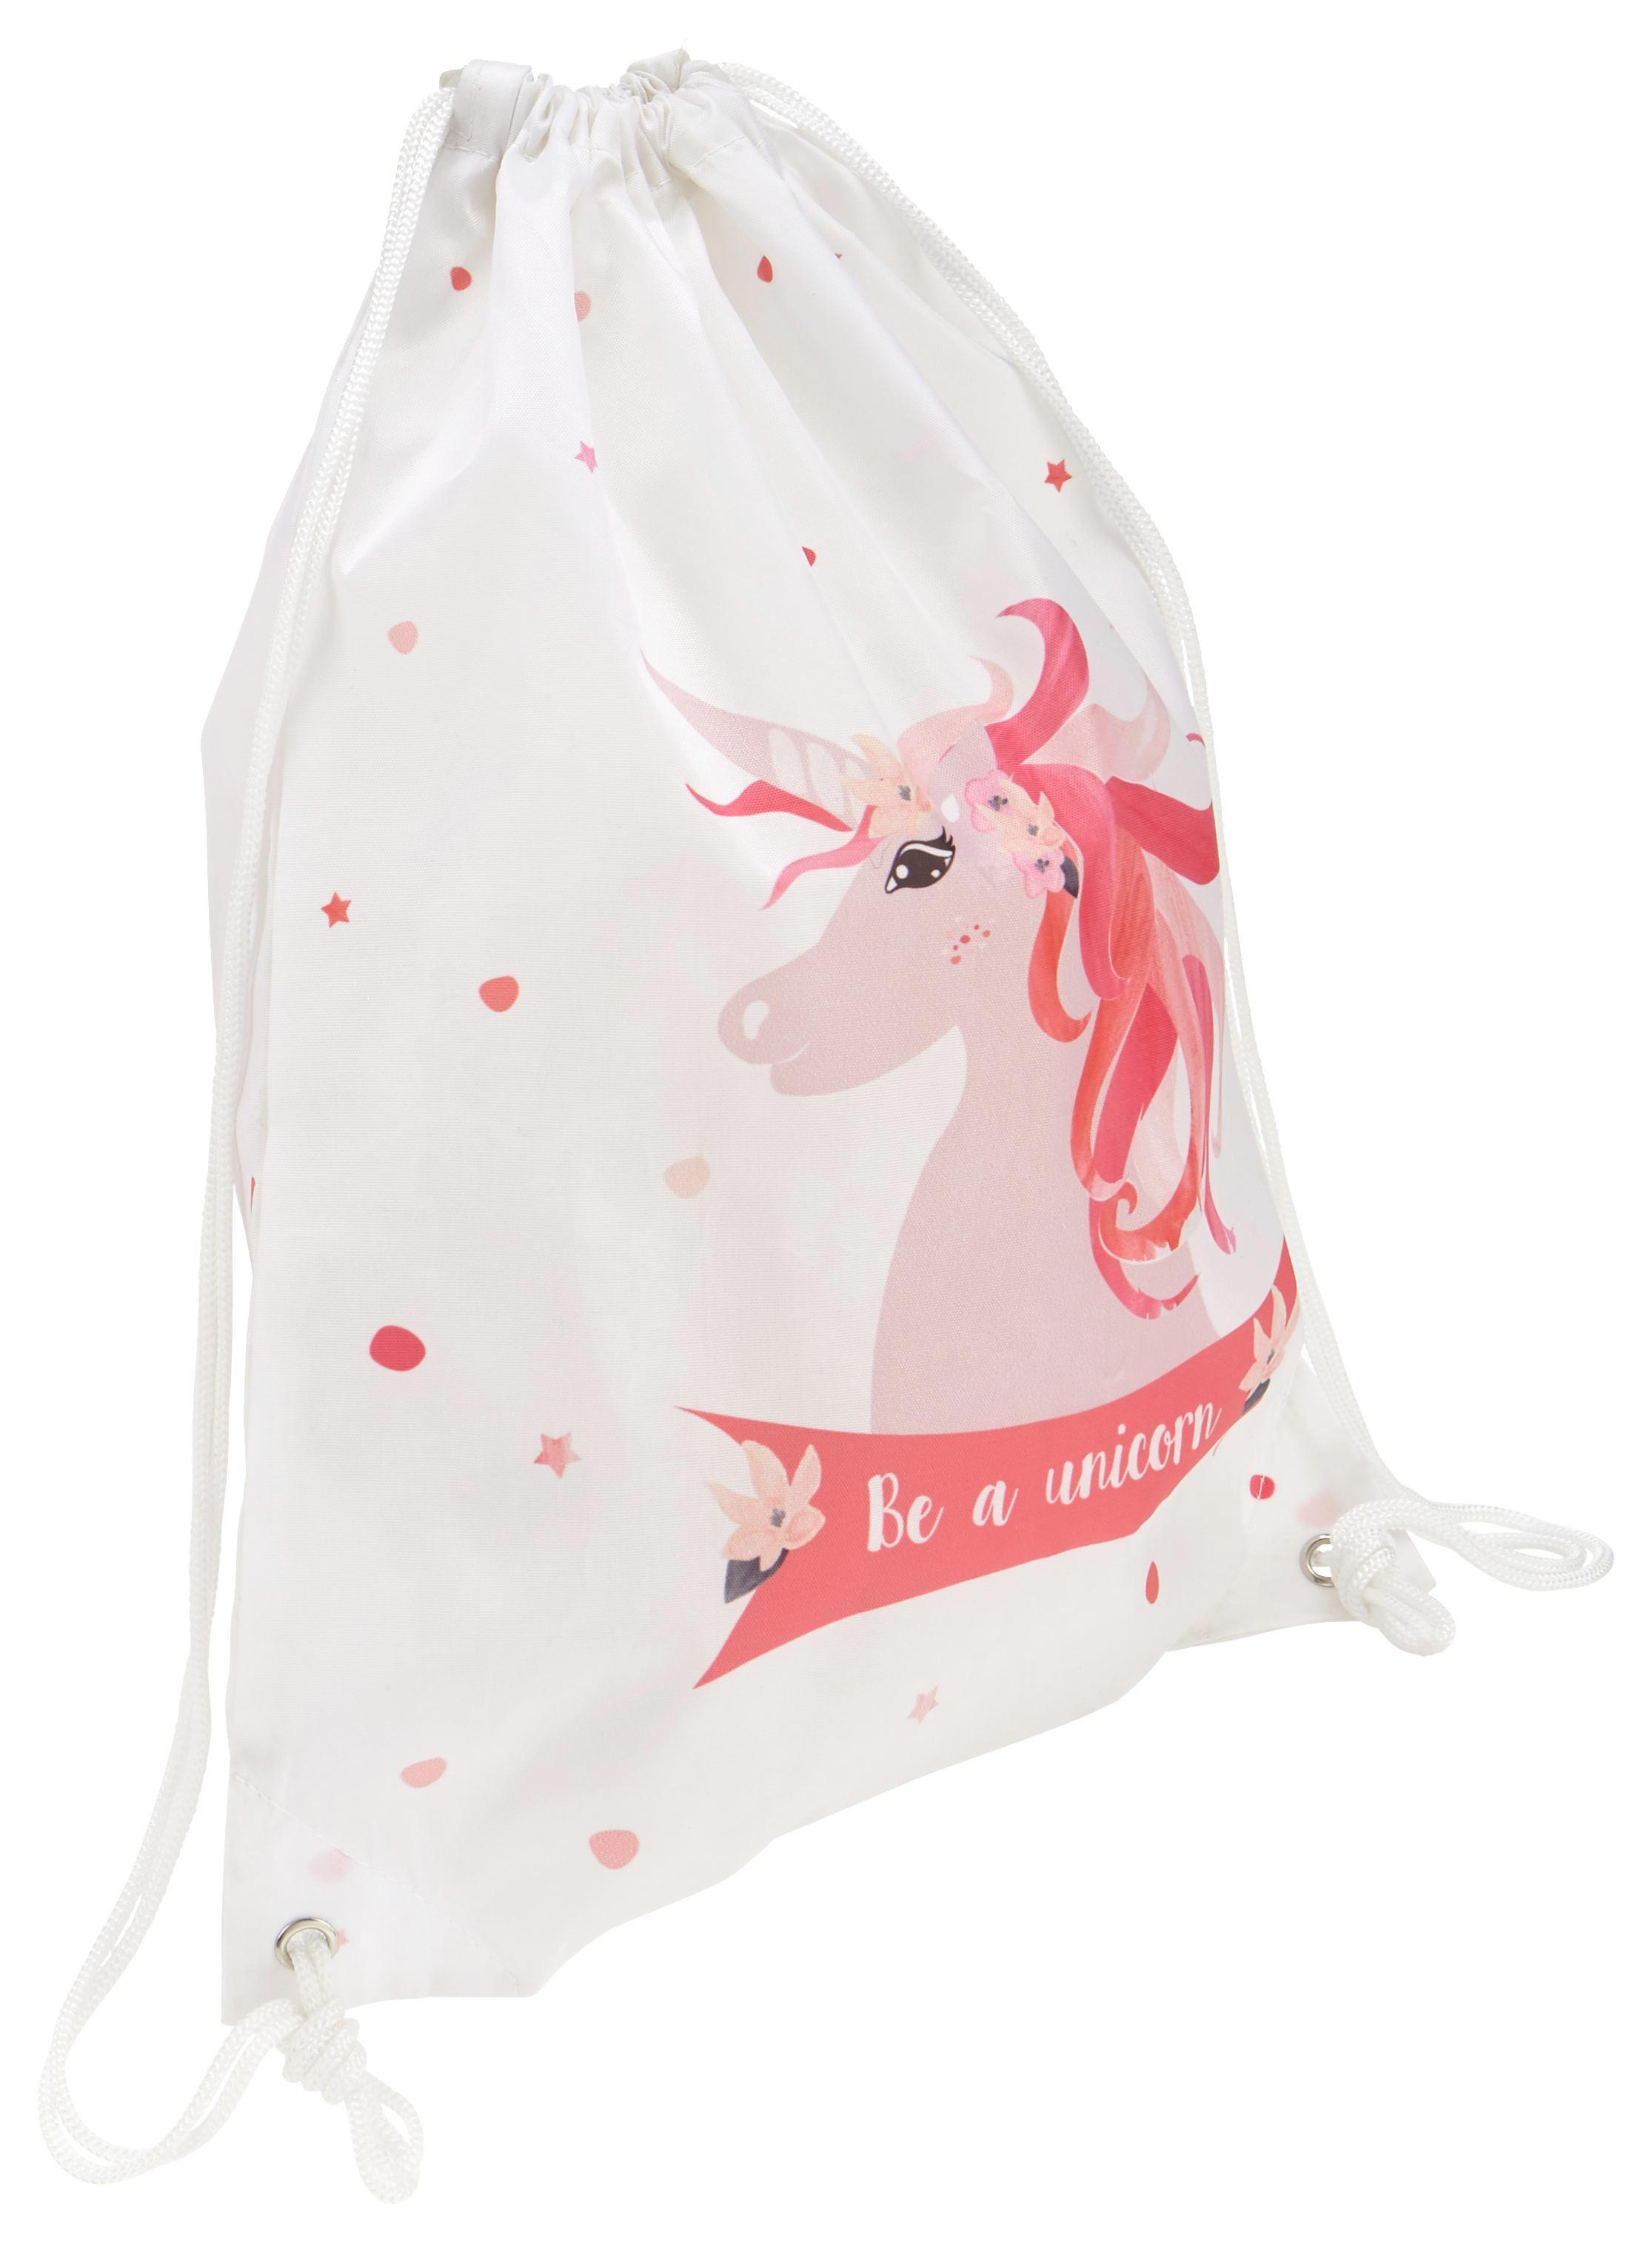 Sportbeutel Unicorn in Rosa/Weiß/pink - Pink/Rosa, Kunststoff (35/40/1cm)